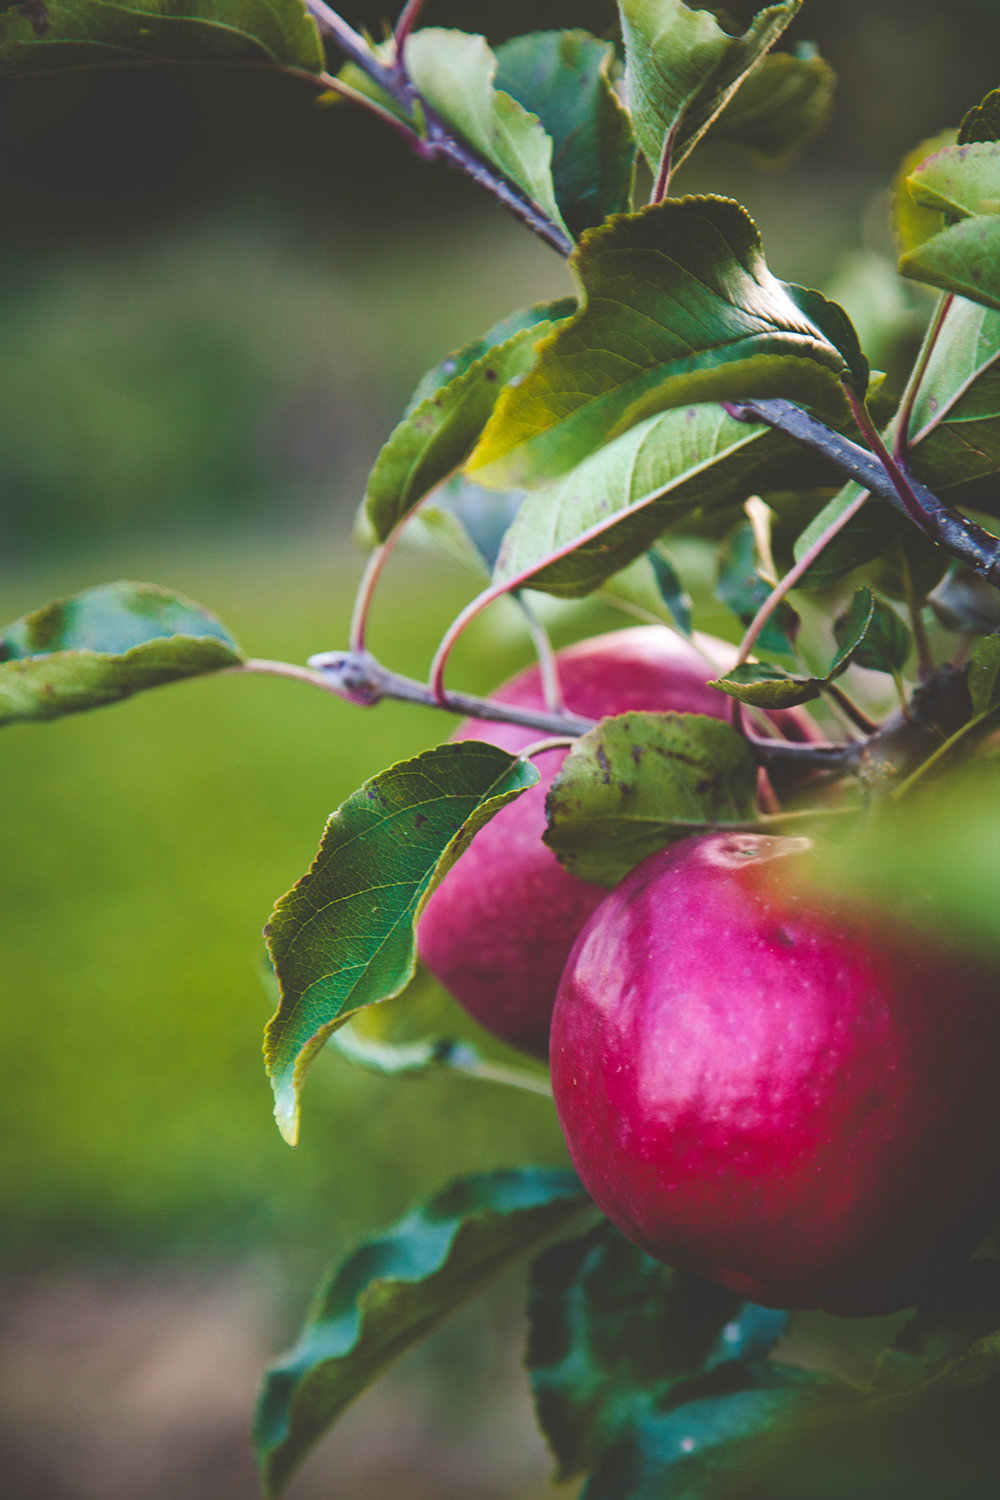 AutumnMotuekaRiverLodge_apple.jpg